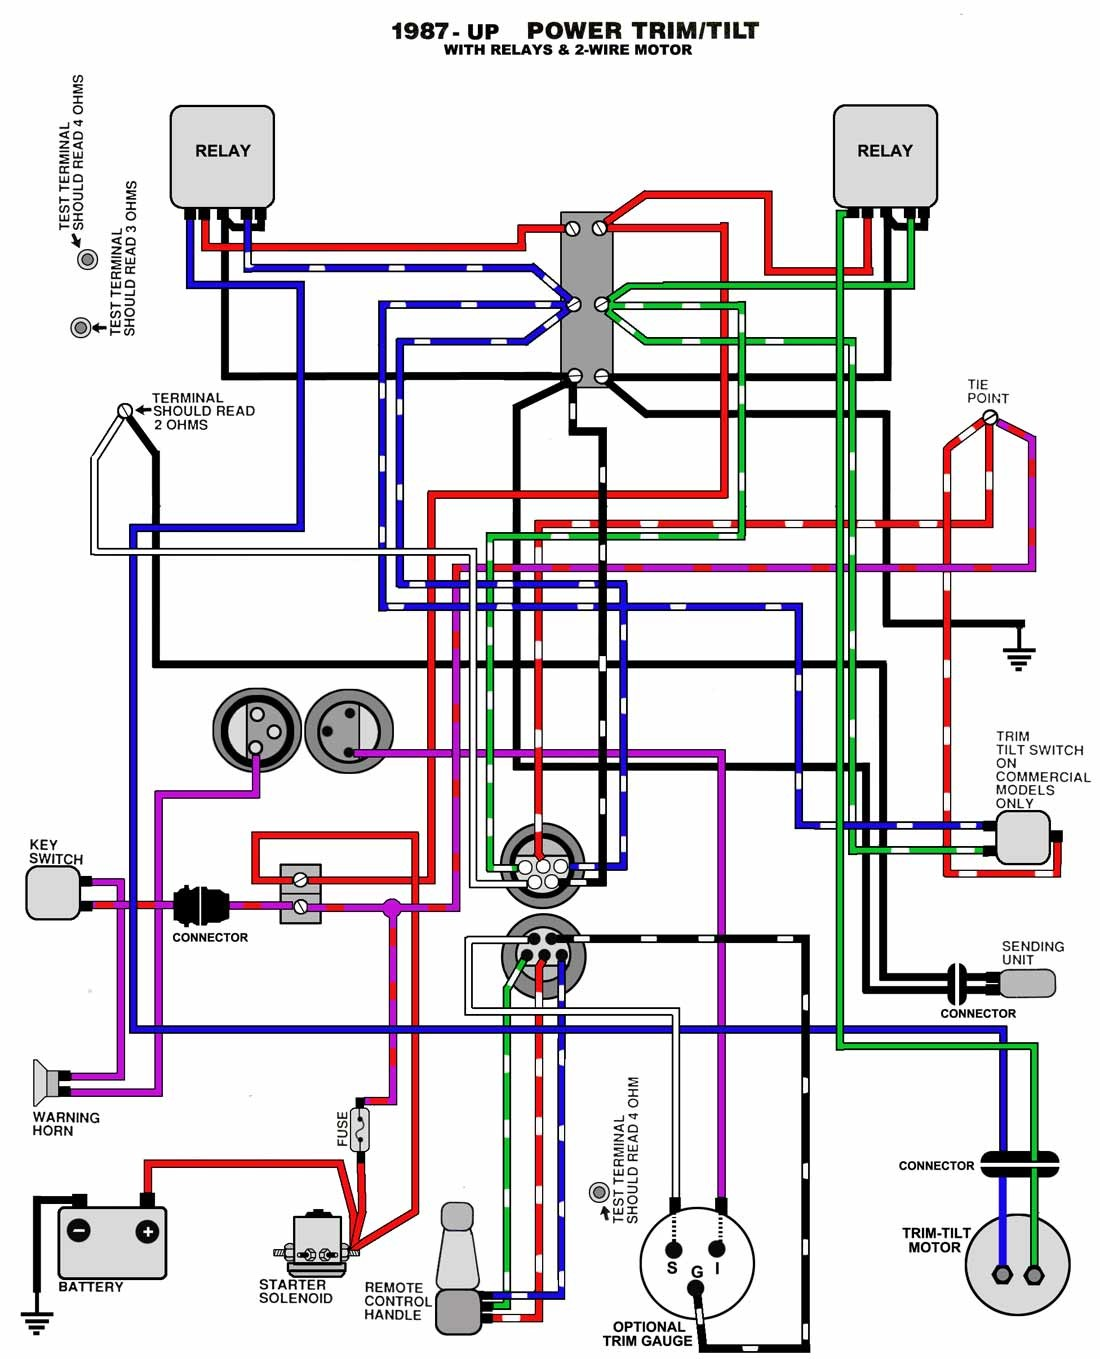 1965 Mercury Starter Relay Wiring Schematic Diagrams 96 Ford Ranger Solenoid Outboard Diagram Elegant 1996